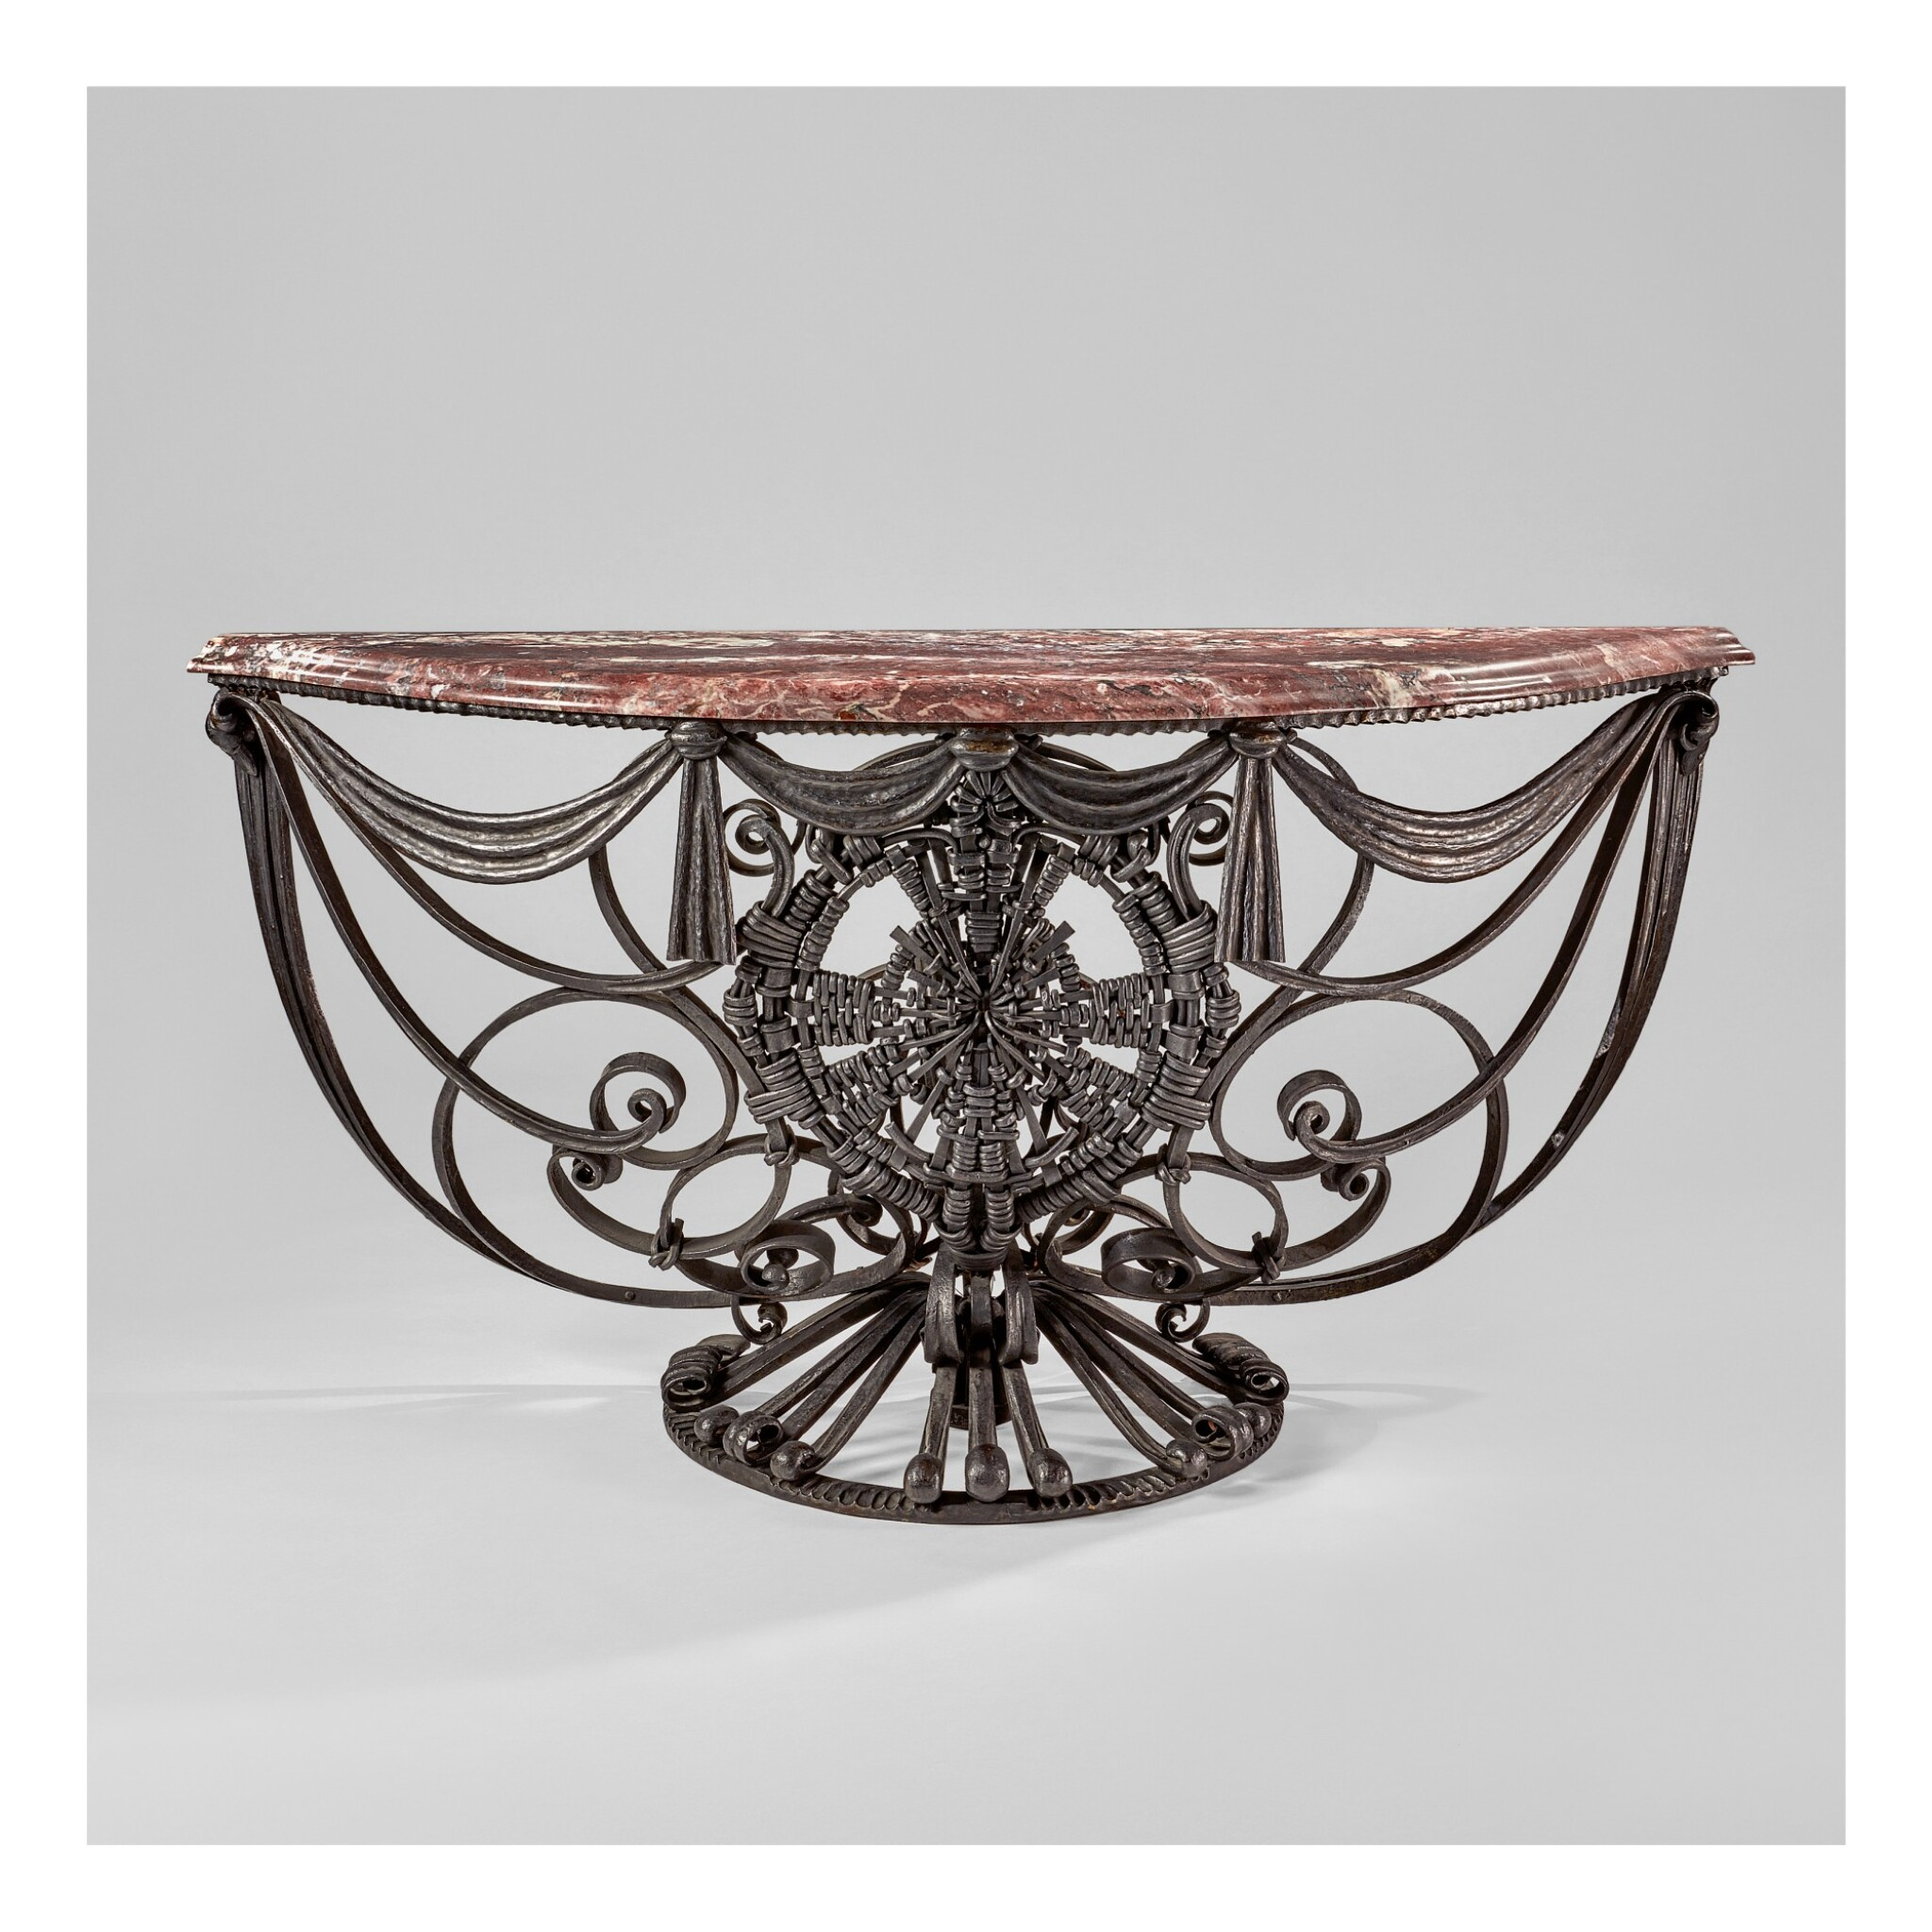 View 1 of Lot 50. Pair of Console Tables.